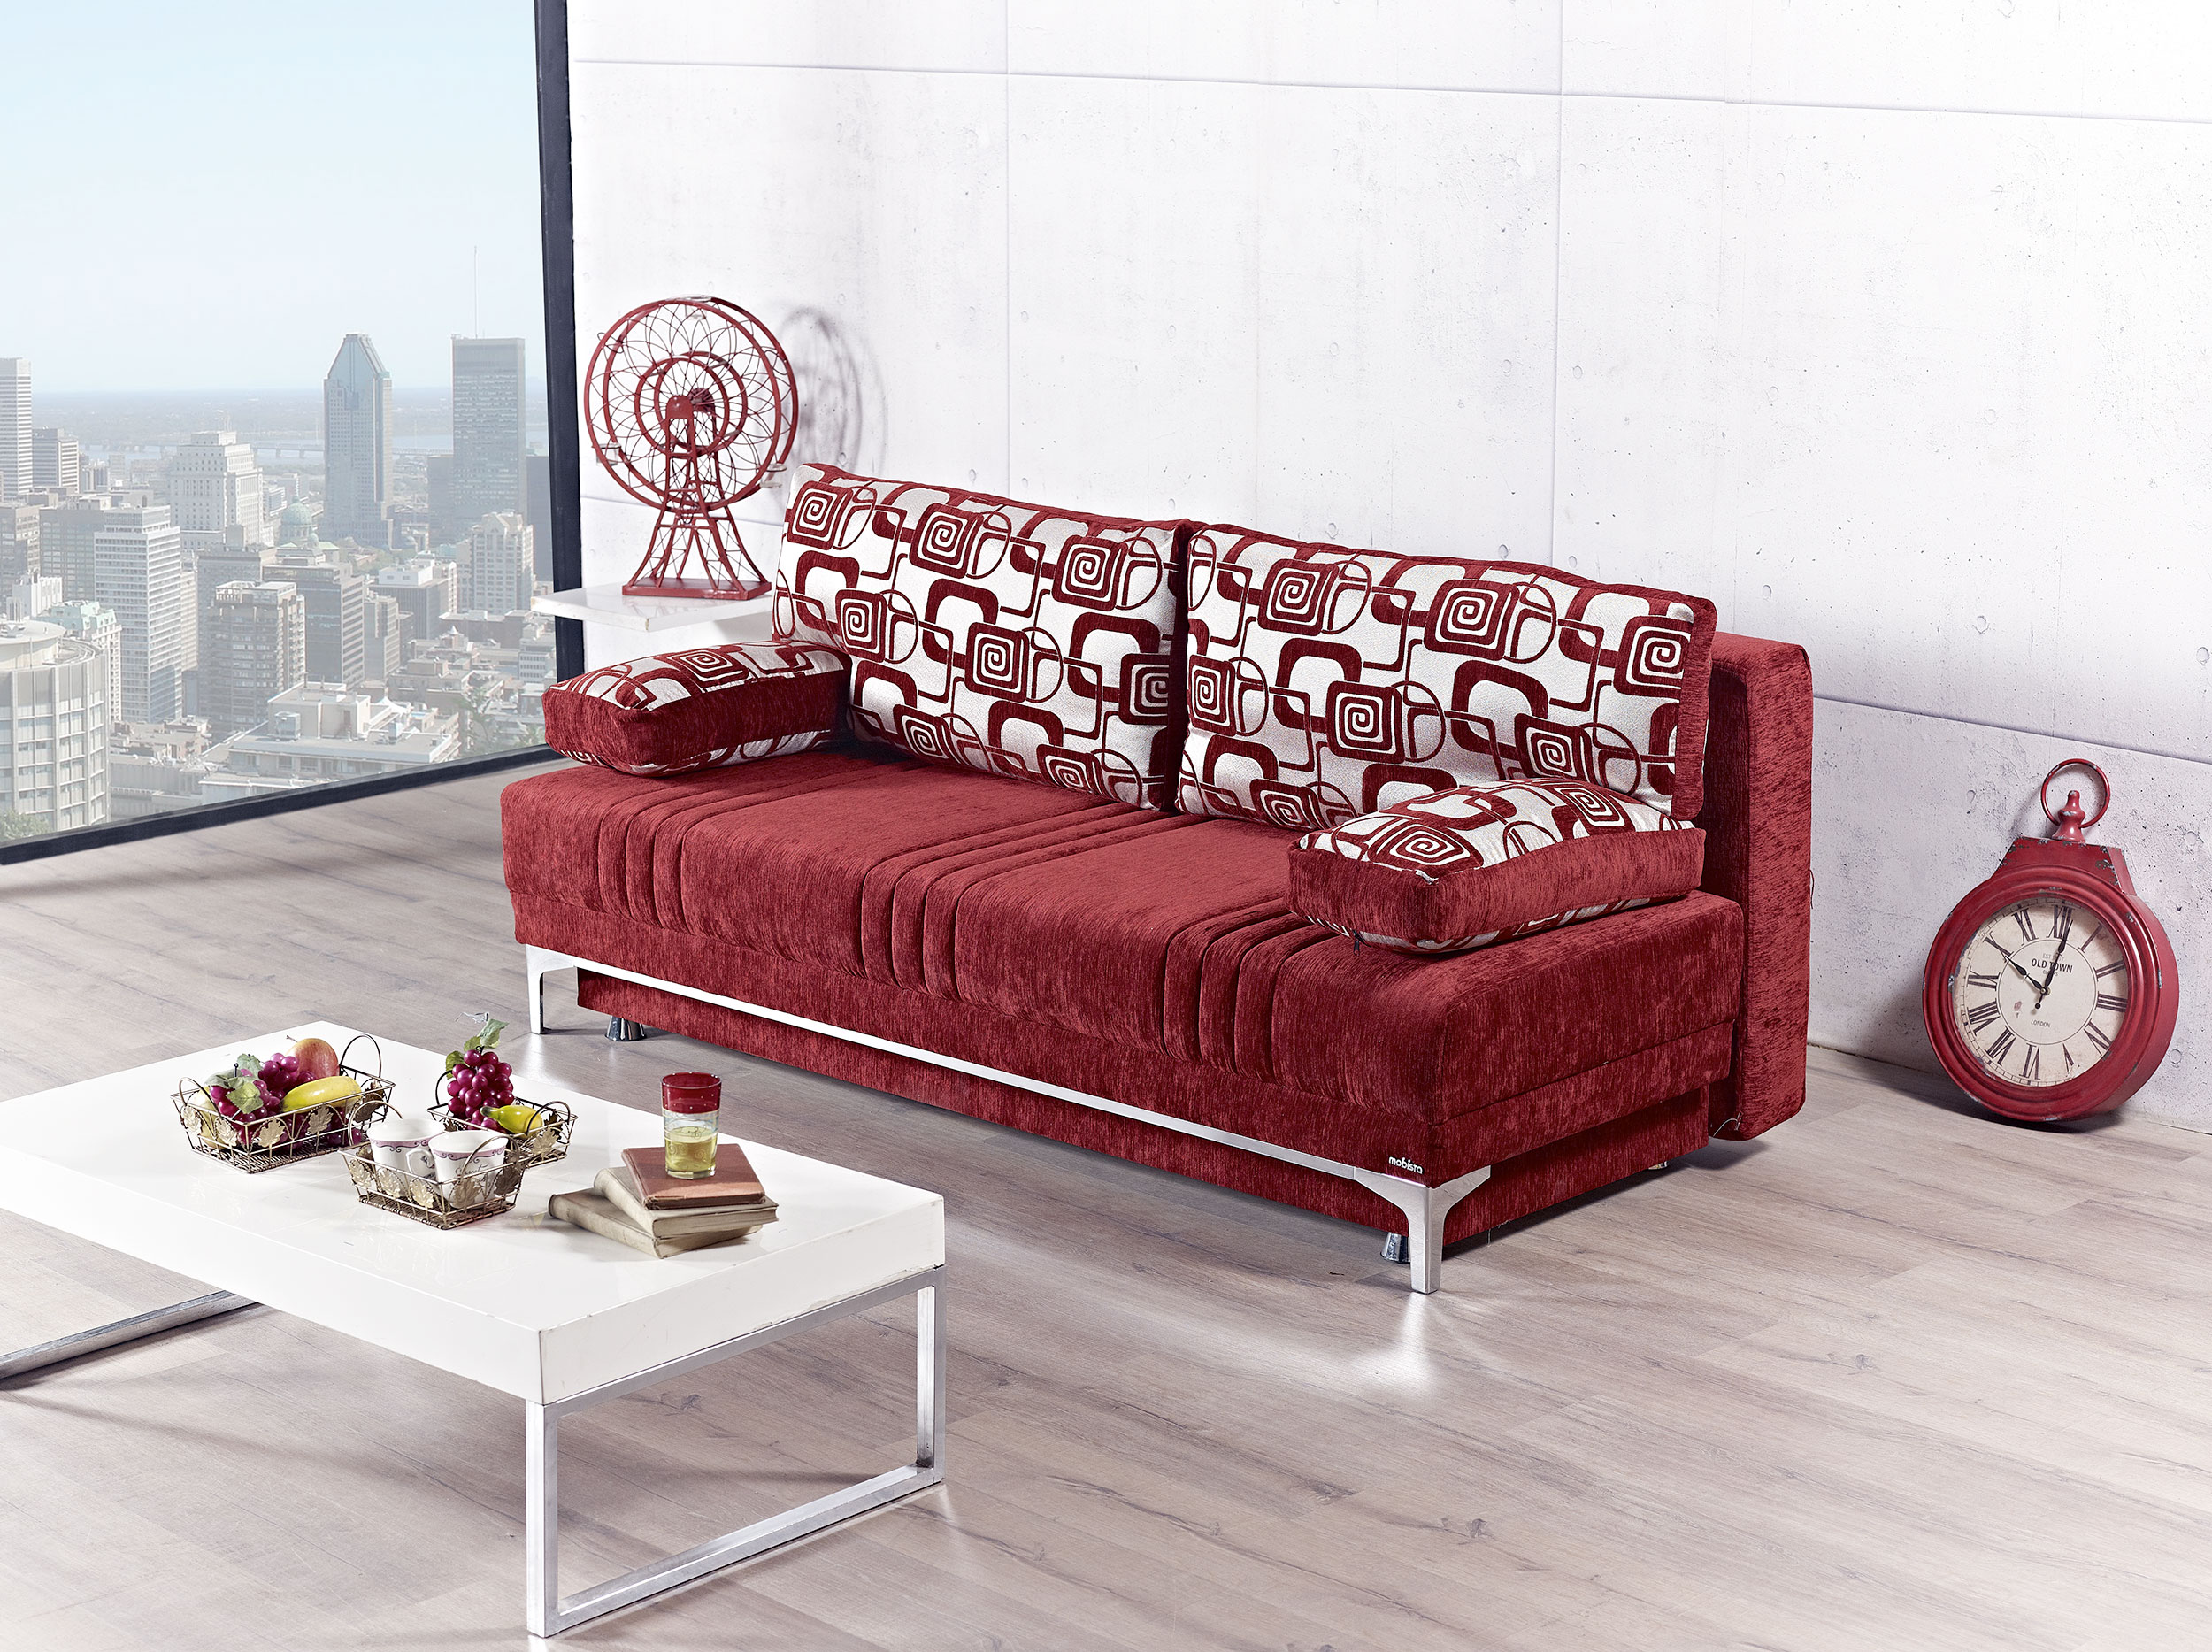 Europa Vigo Burgundy Plain Queen Size Sofa Bed by Mobista